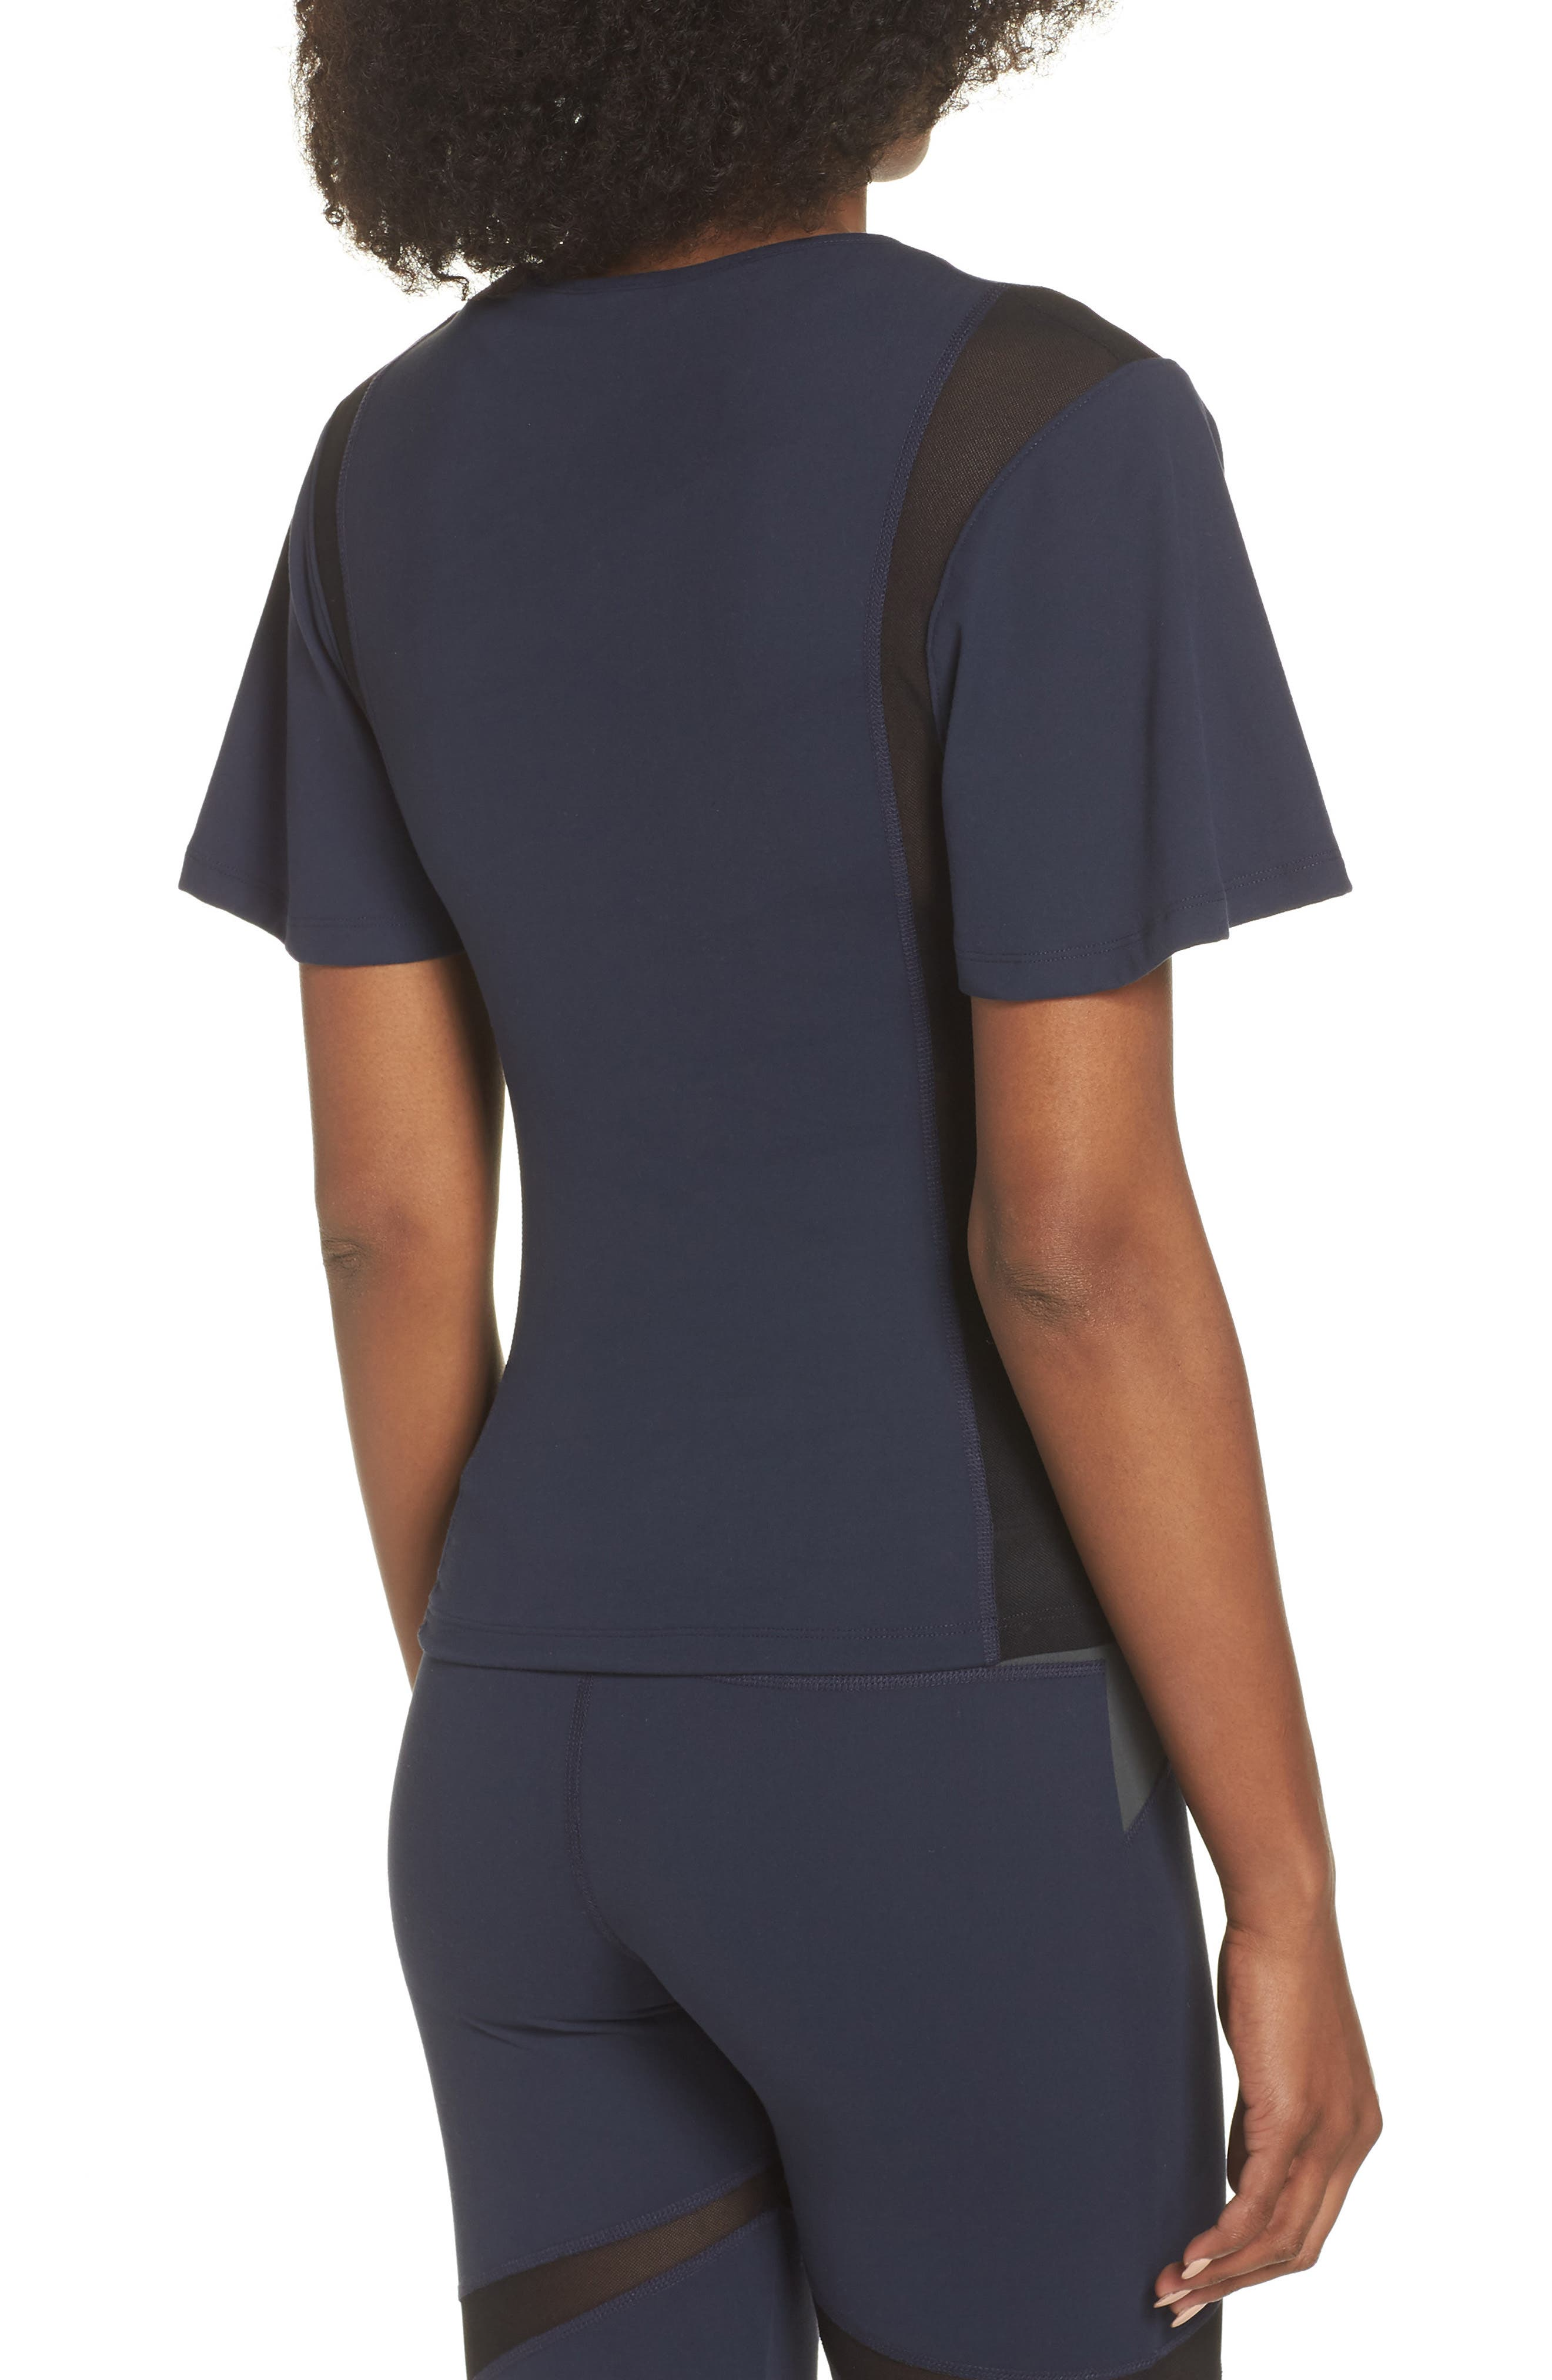 BoomBoom Athletica Wing Sleeve Tee,                             Alternate thumbnail 2, color,                             NAVY/ BLACK